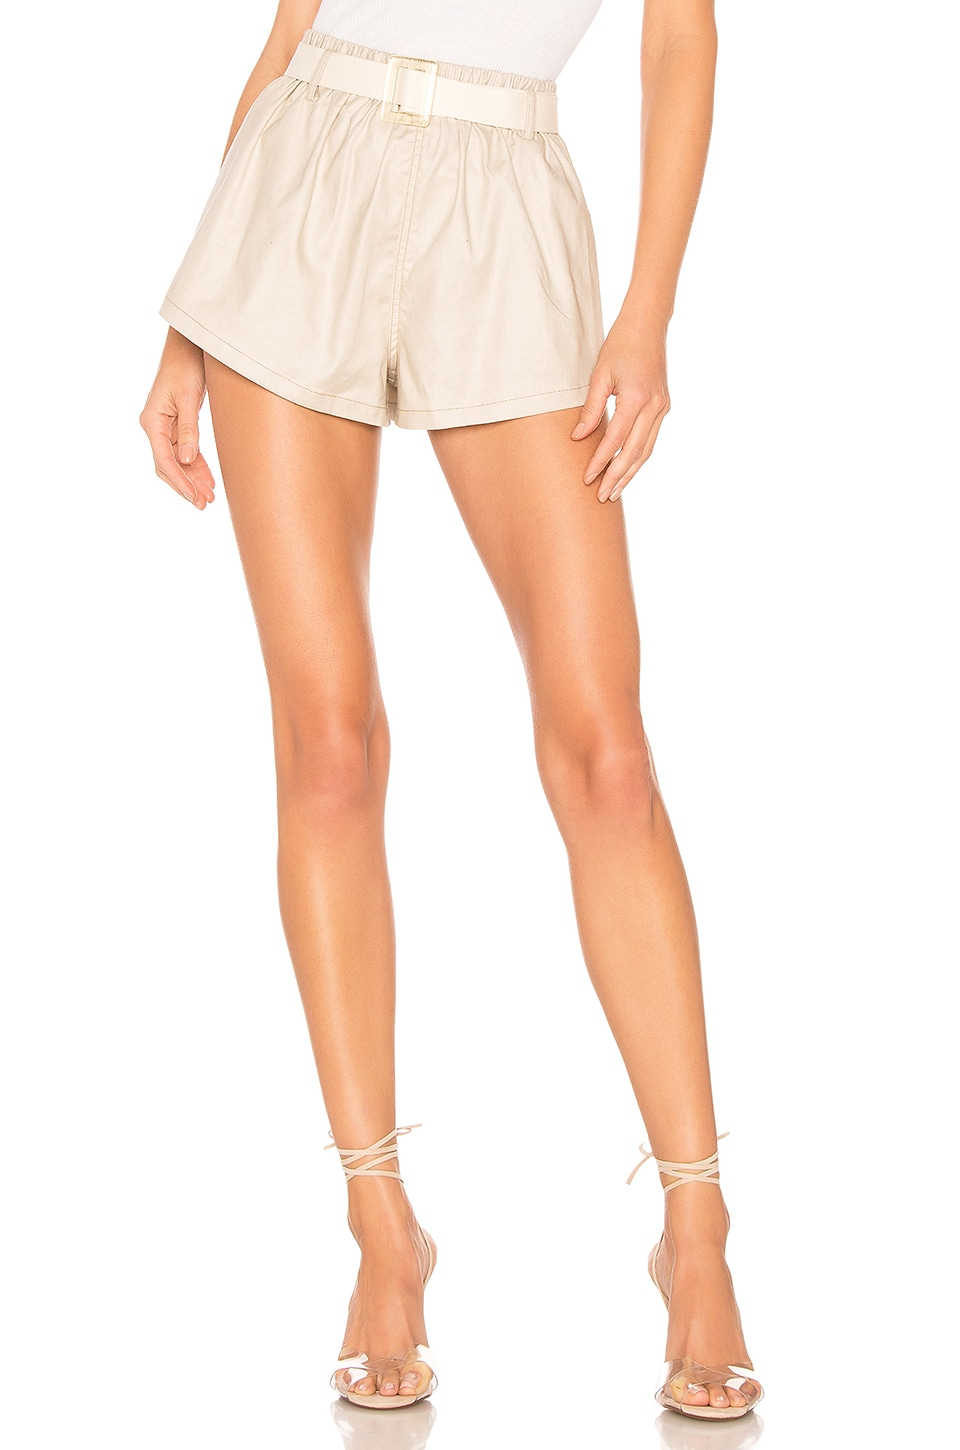 L'Academie The Frances Short in Oatmeal